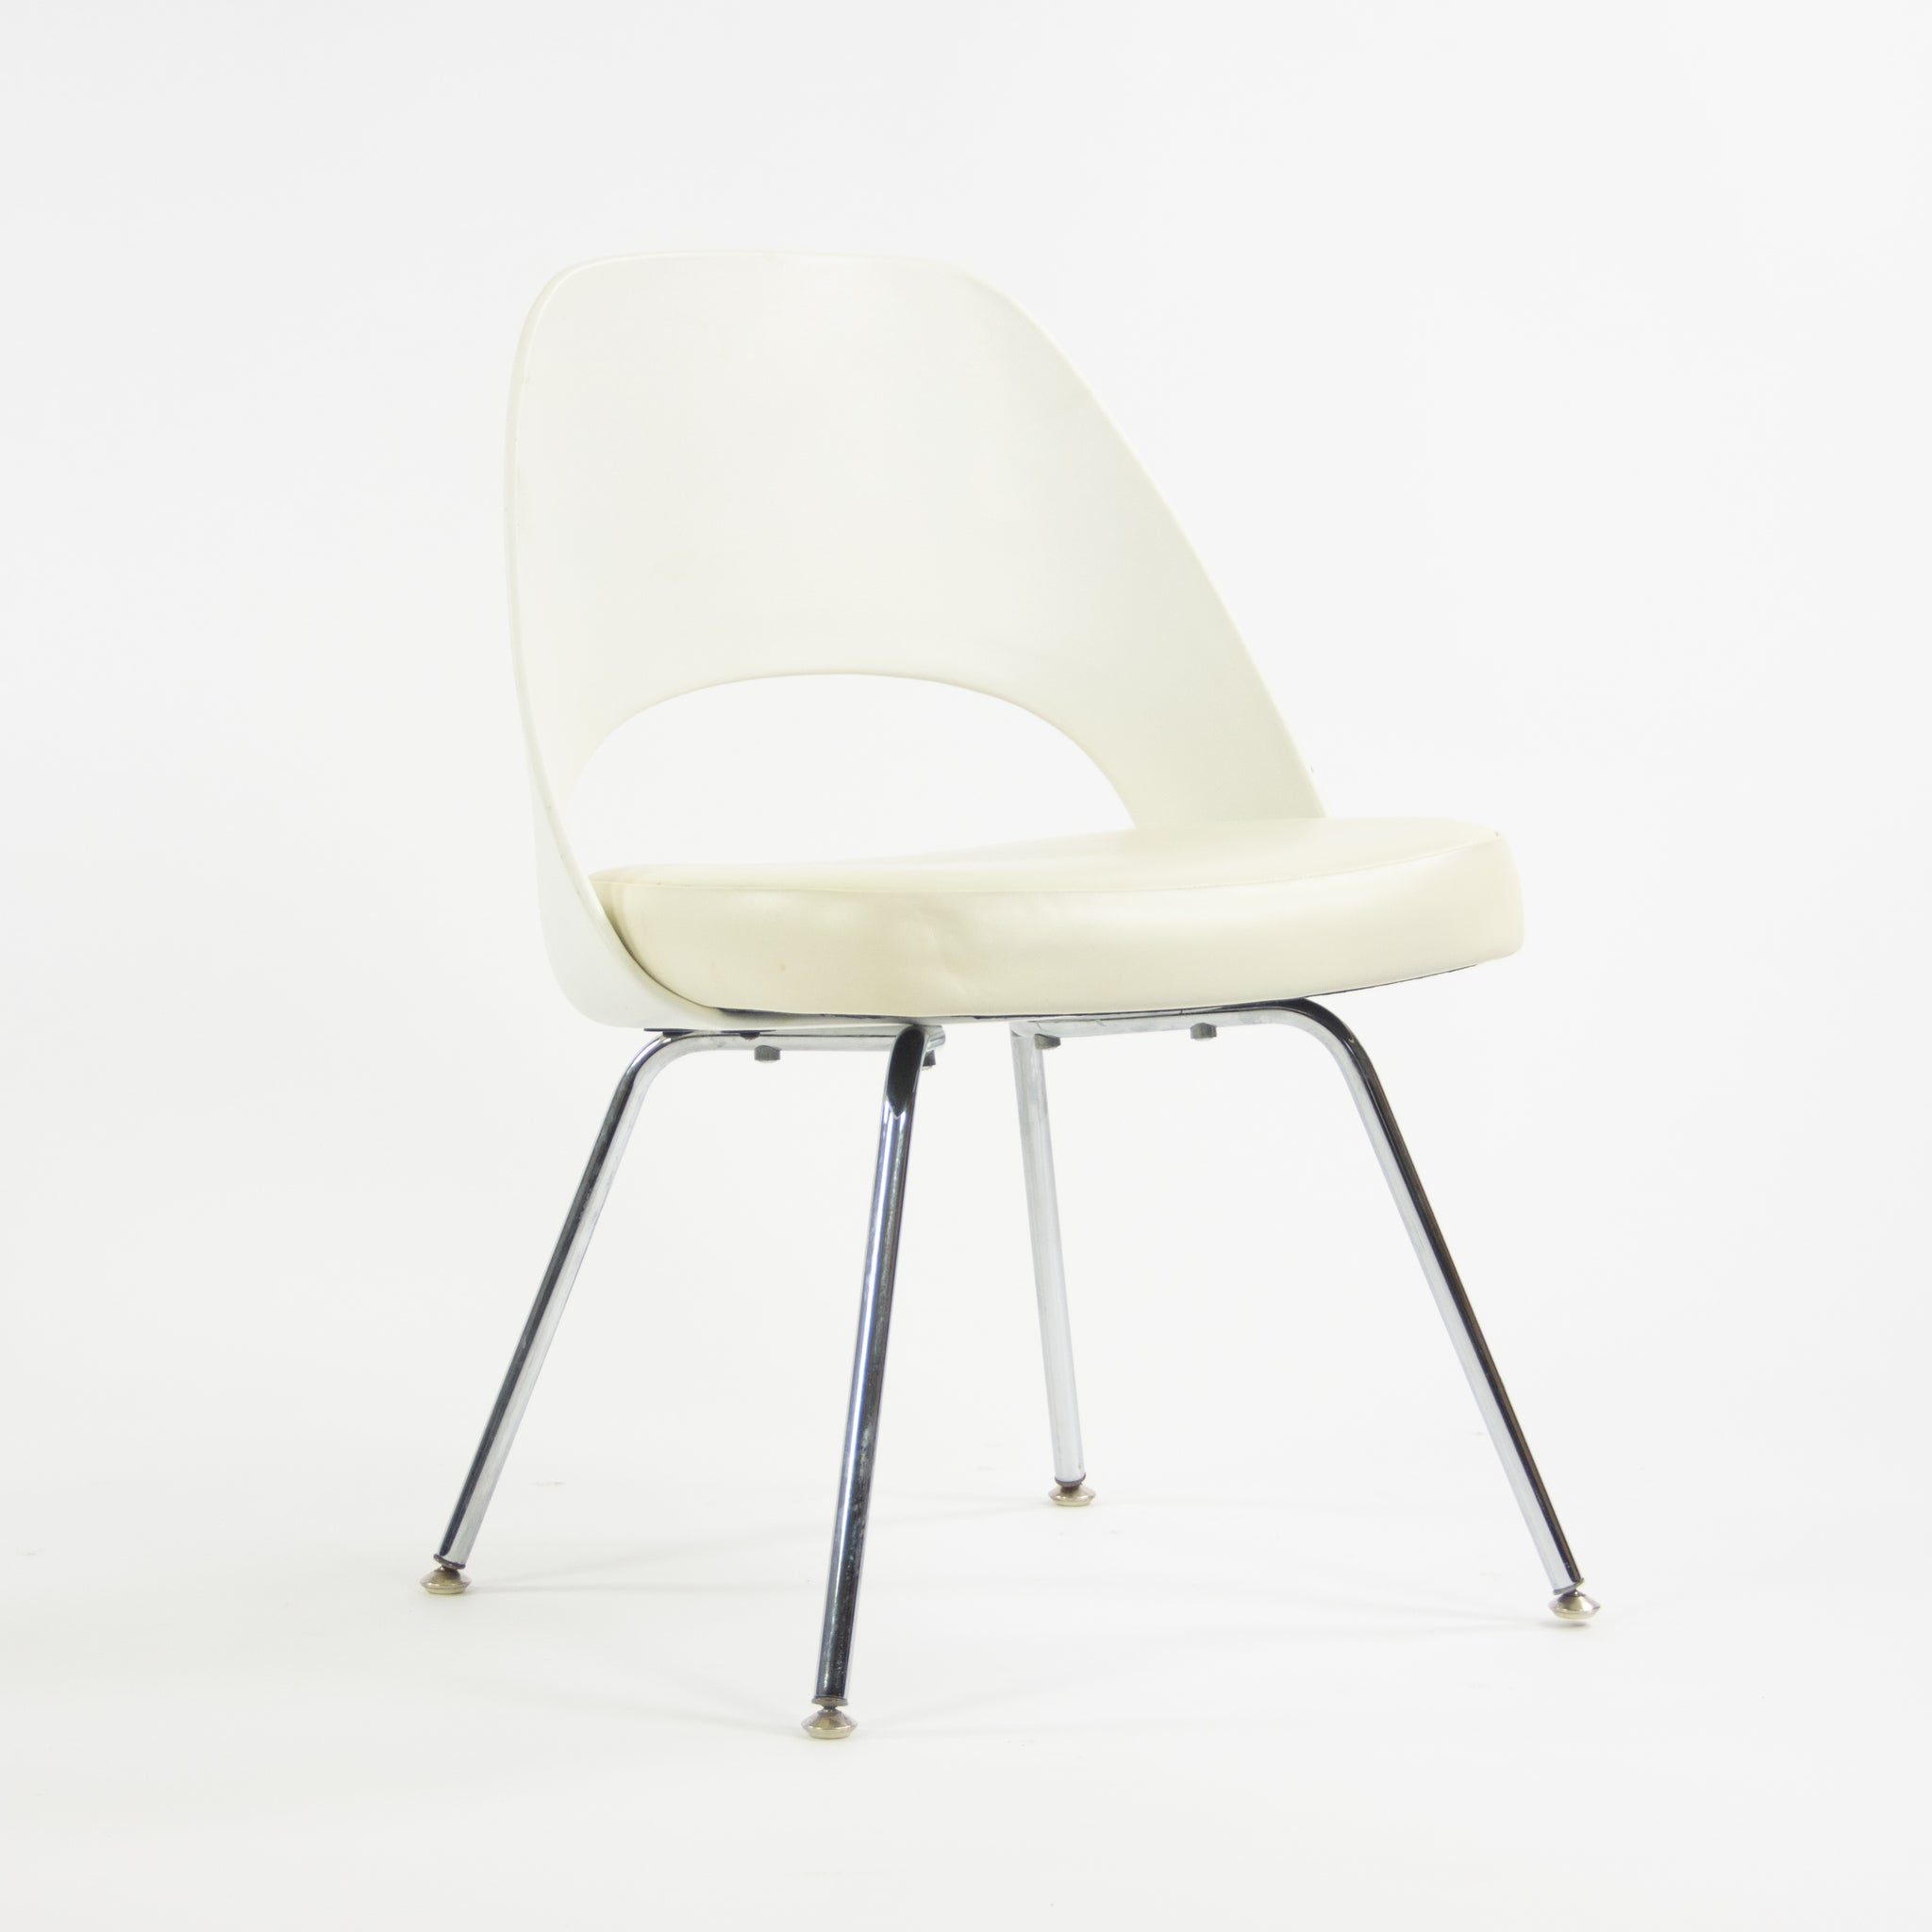 2014 Knoll Studio Eero Saarinen Executive Armless Side Chairs White 150+ Available